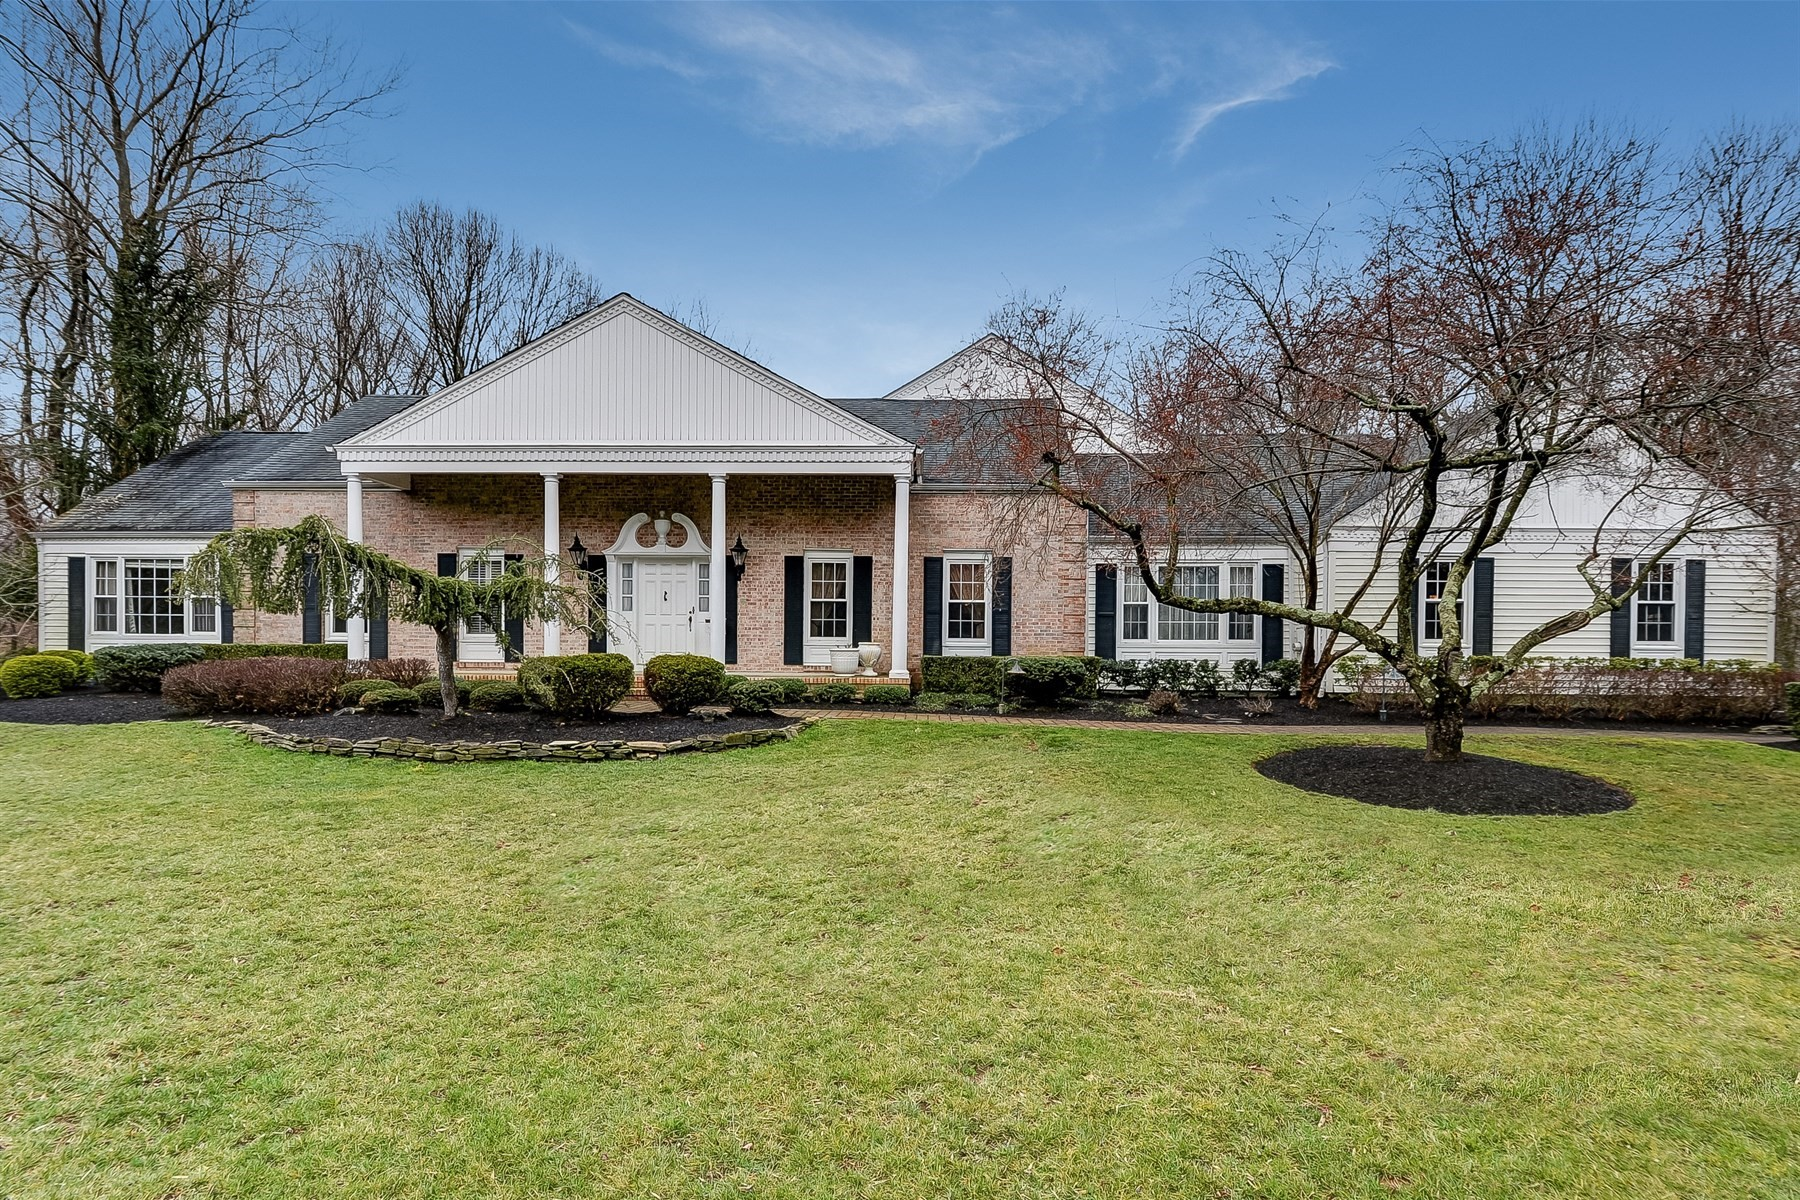 Single Family Home for Sale at Impeccable Home in Every Way 31 Blackbriar Drive Colts Neck, New Jersey, 07722 United States